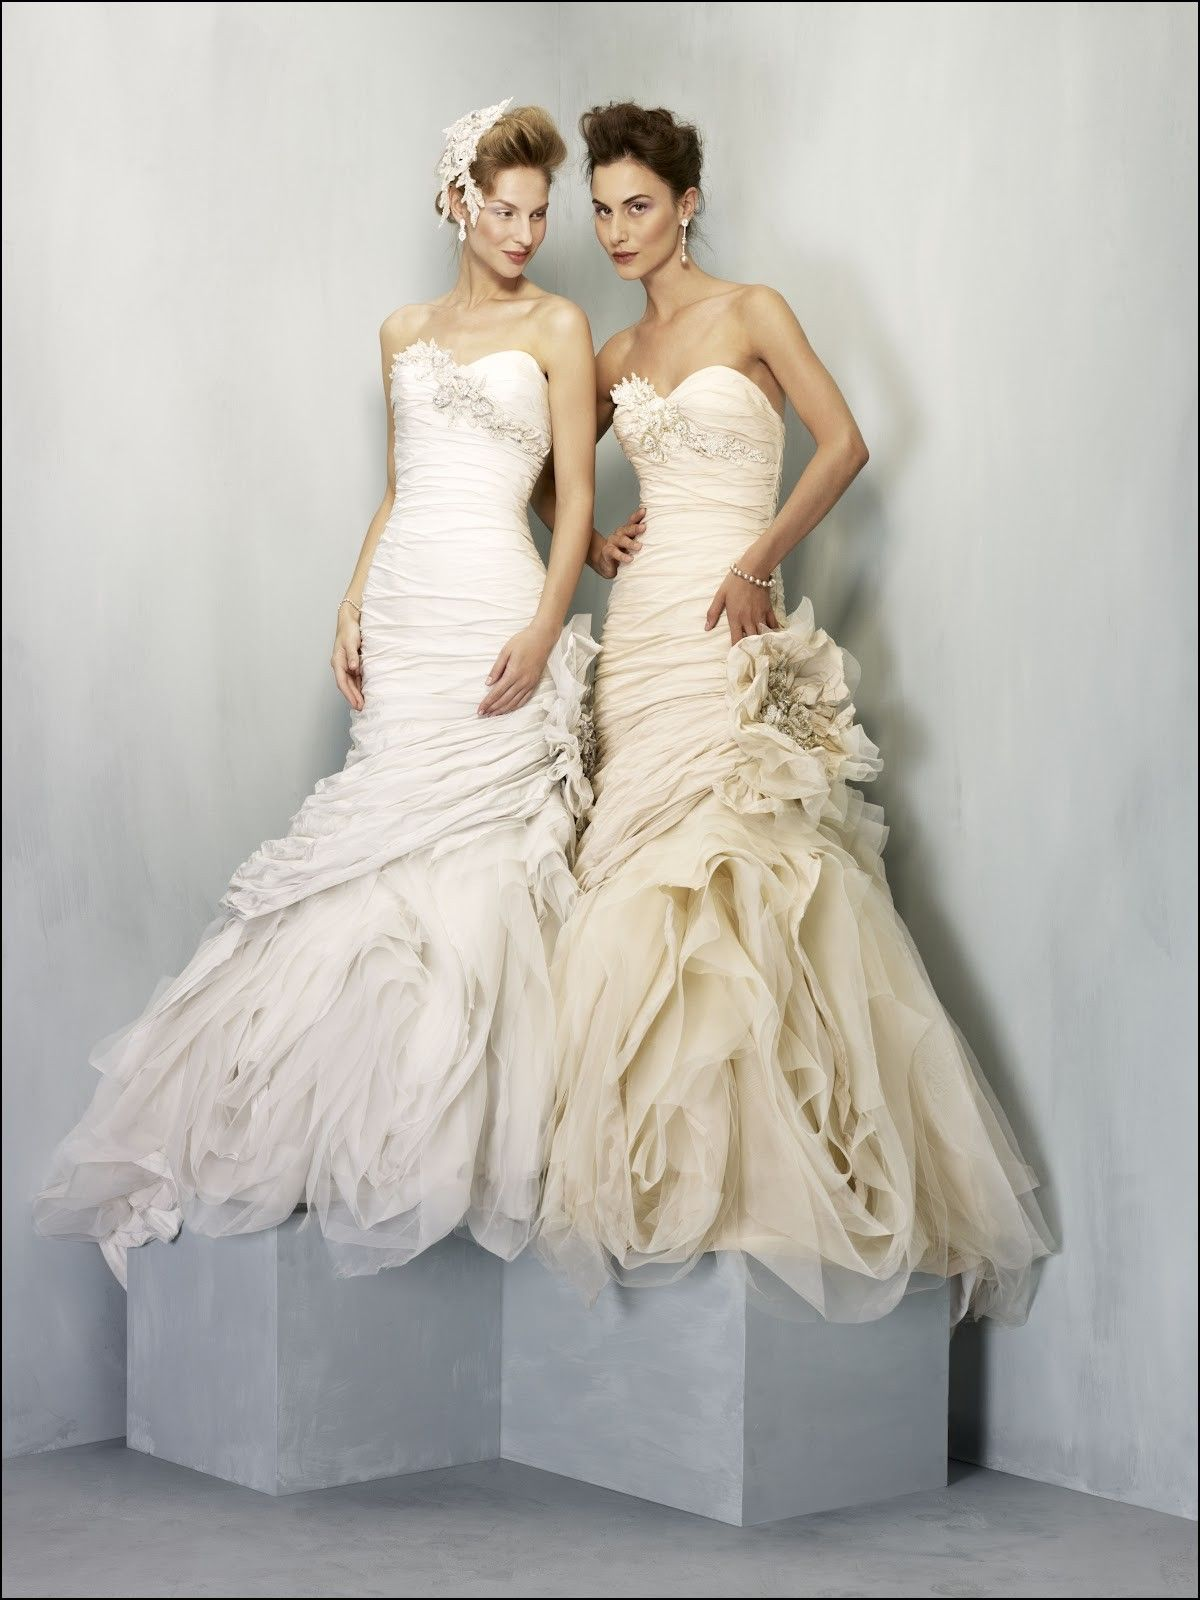 White Vs Ivory Wedding Dress Ivory Wedding Dress Bridal Dresses Wedding Dresses